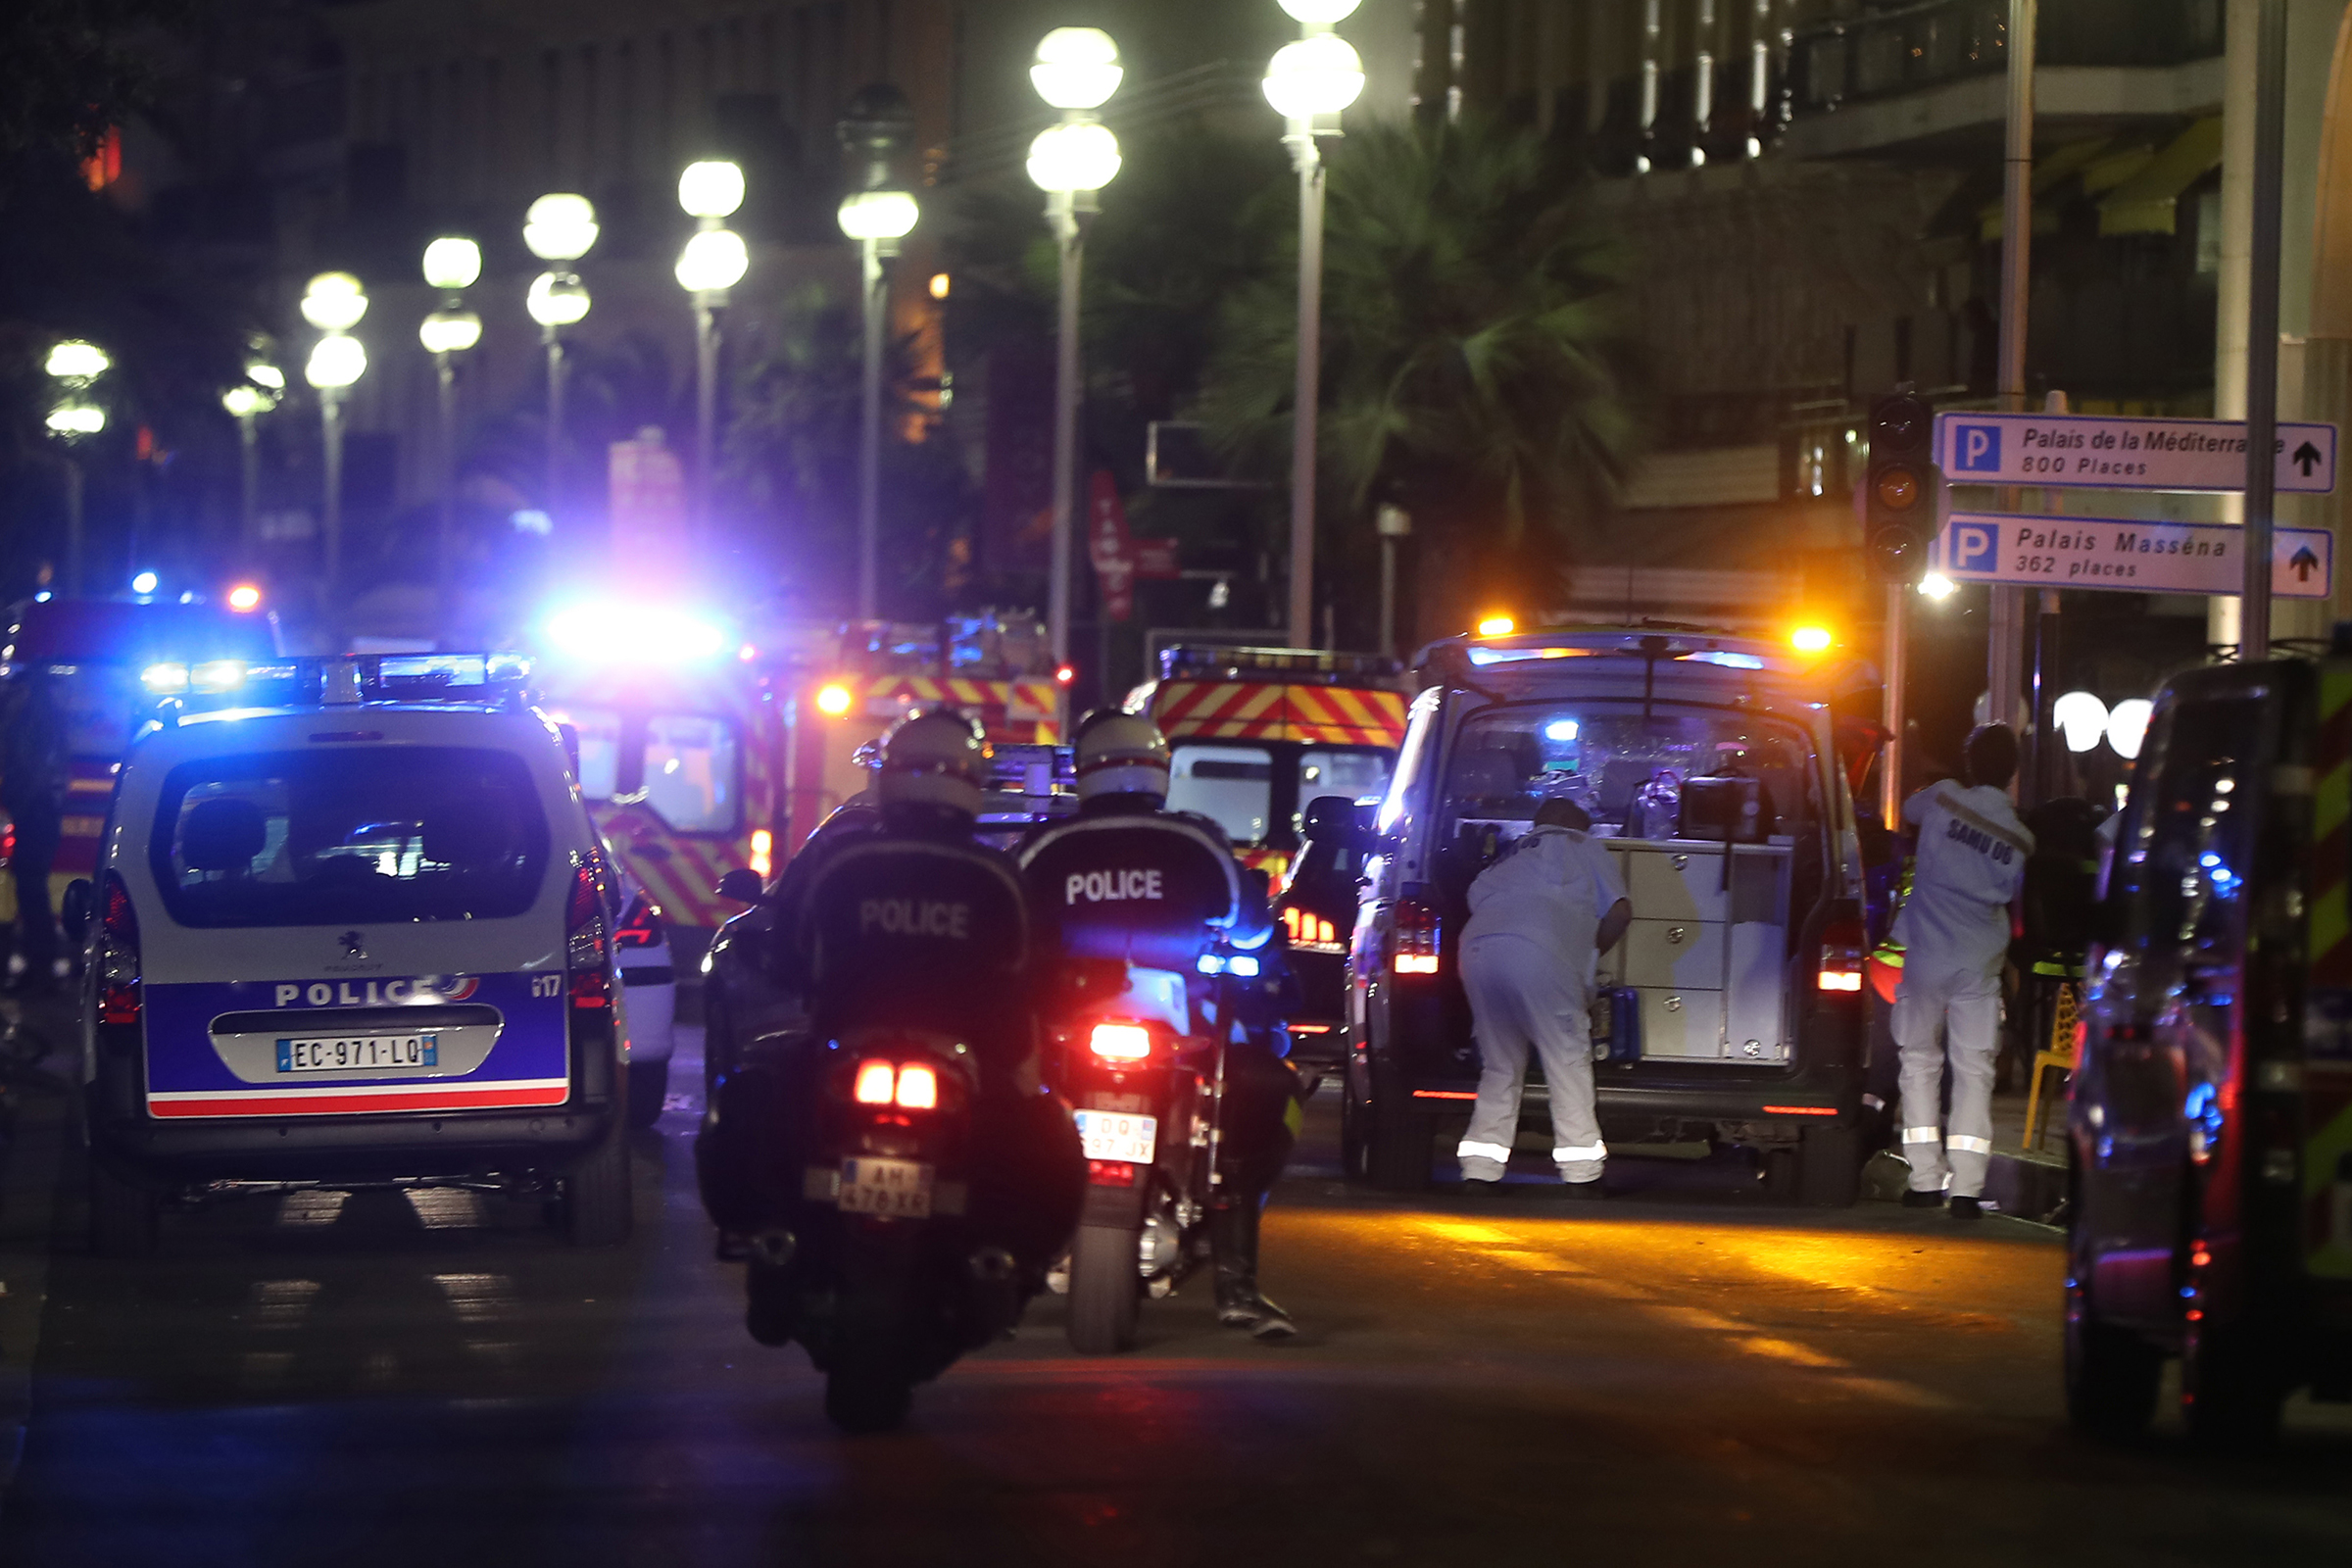 Police officers and rescue workers arrive at the scene of an attack on July 14, 2016, after a van ploughed into a crowd leaving a fireworks display in the French Riviera town of Nice. The mayor of the French city of Nice said dozens of people were likely killed after a van rammed into a crowd marking Bastille Day in the French Riviera resort today and urged residents to stay indoors.  / AFP PHOTO / VALERY HACHE